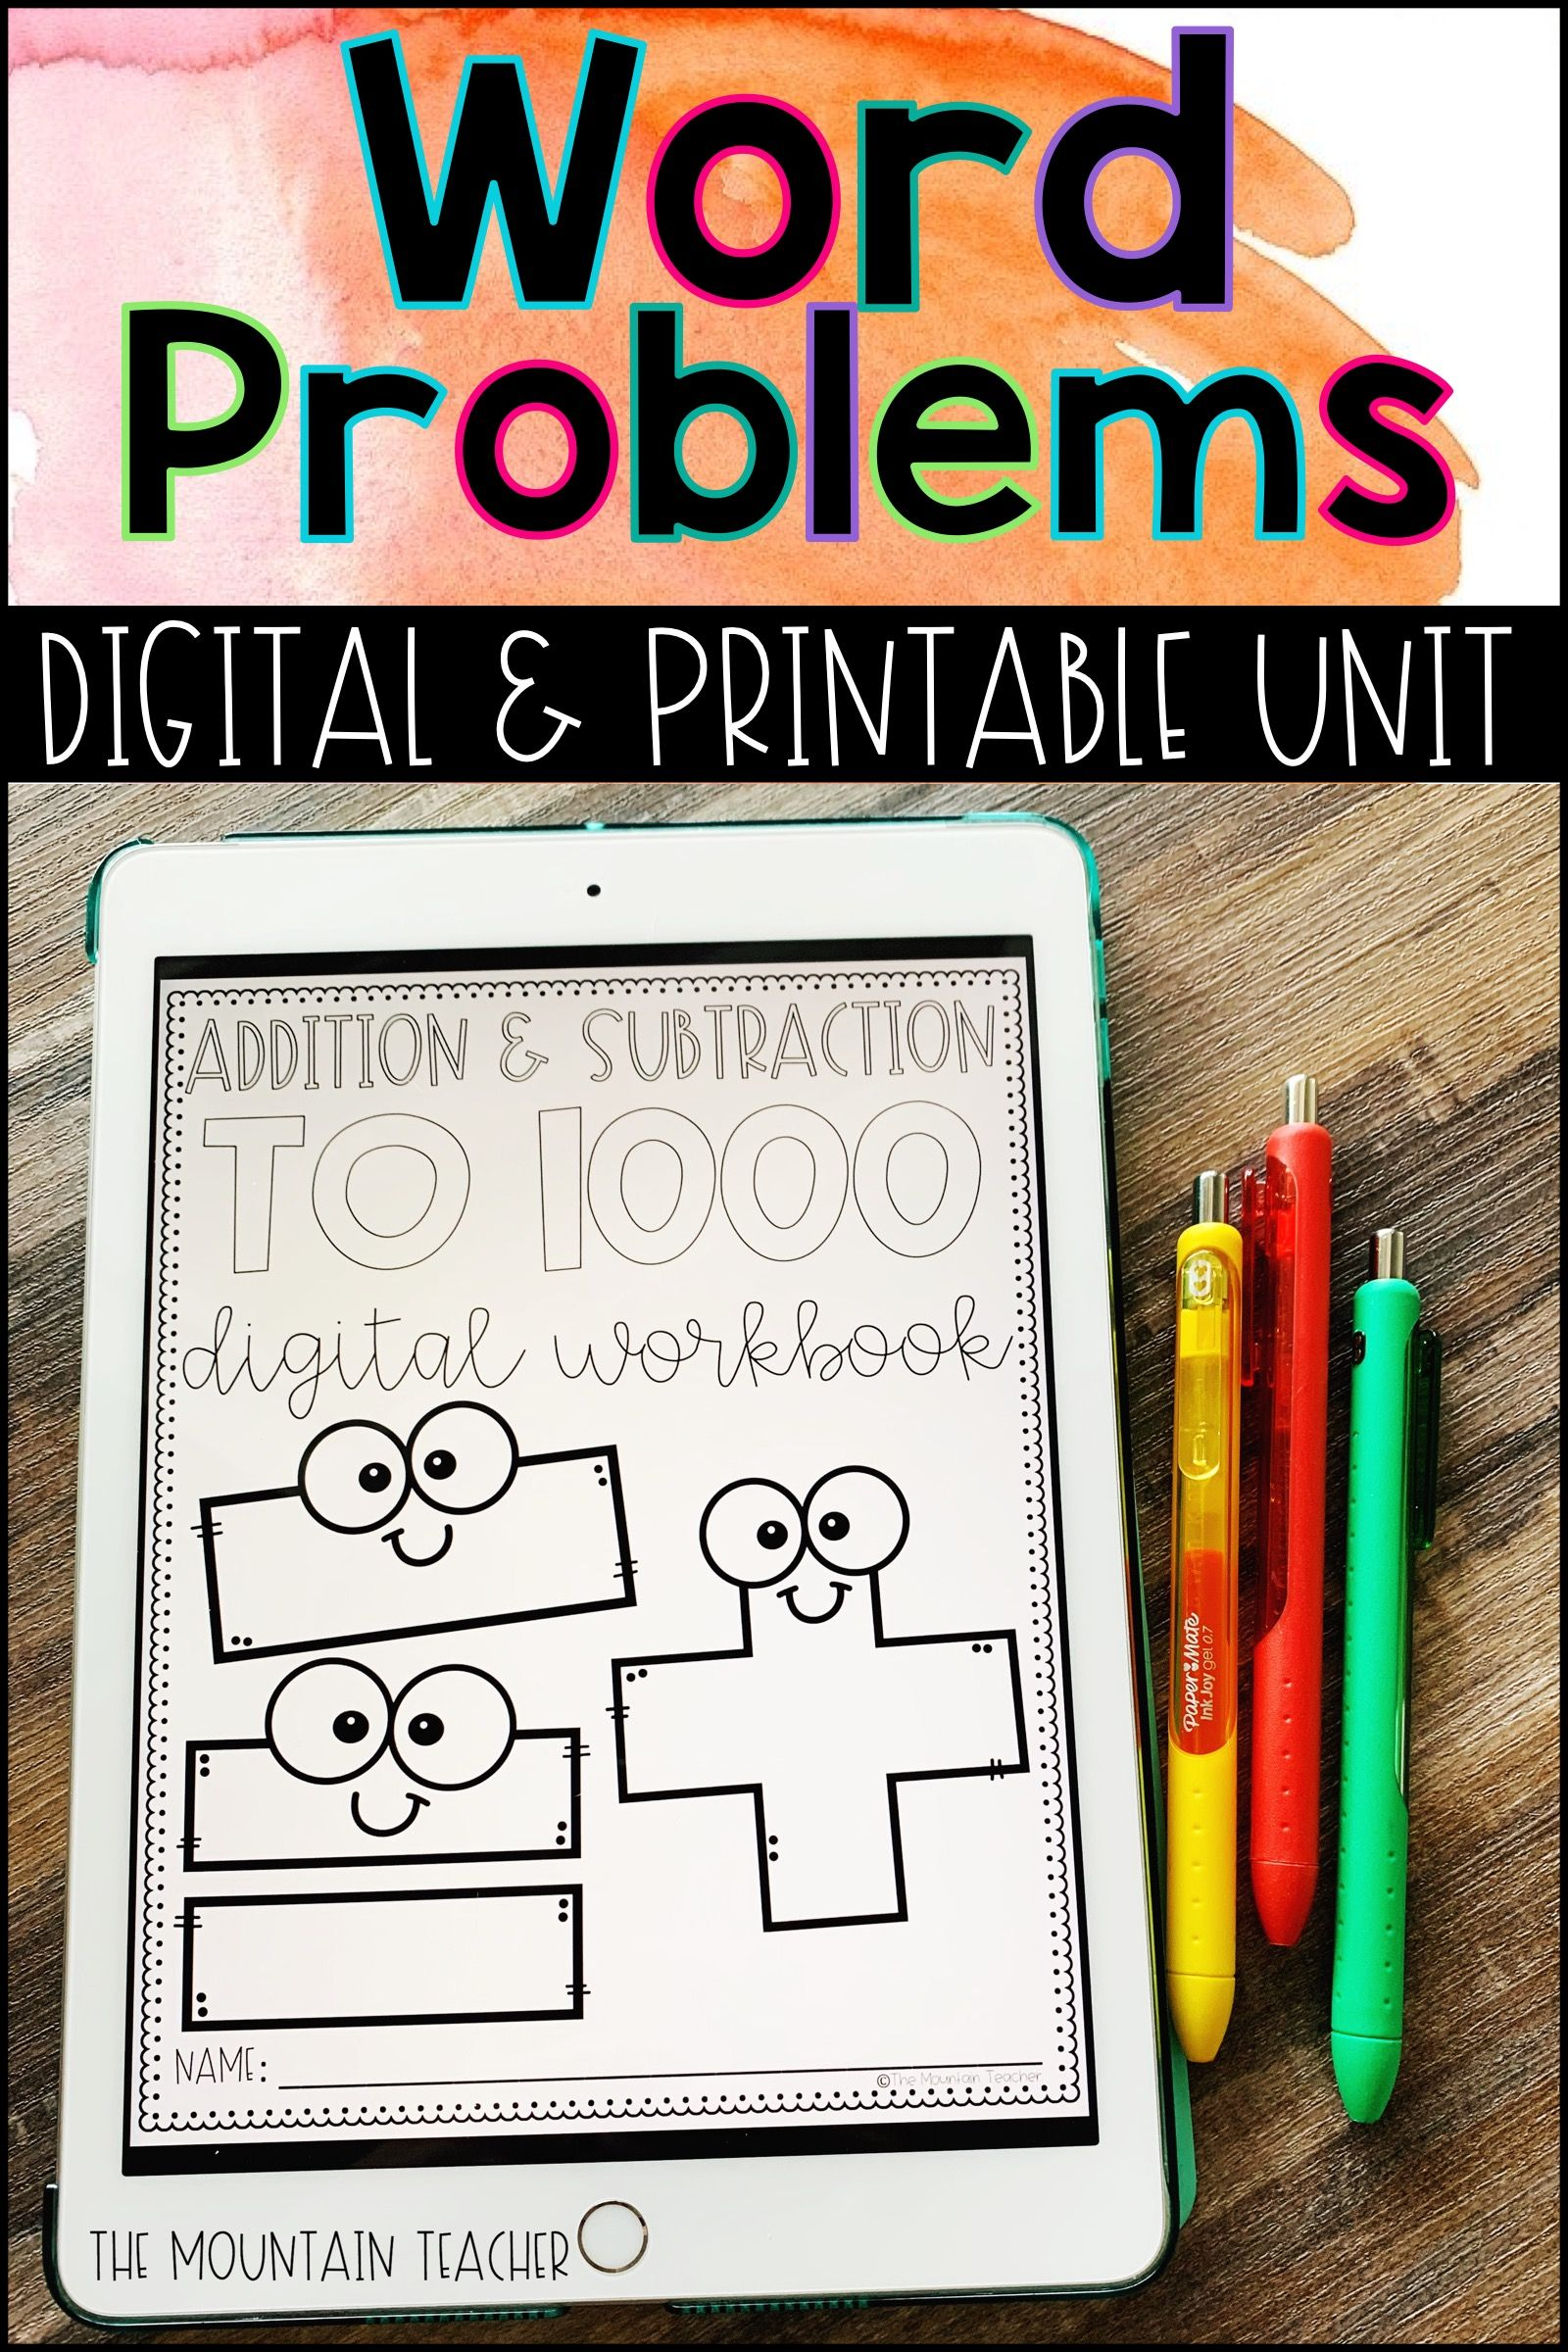 2nd Grade Word Problems Worksheets Or Digital Workbook For Distance Learning Word Problems Elementary Math Lessons Addition And Subtraction Worksheets